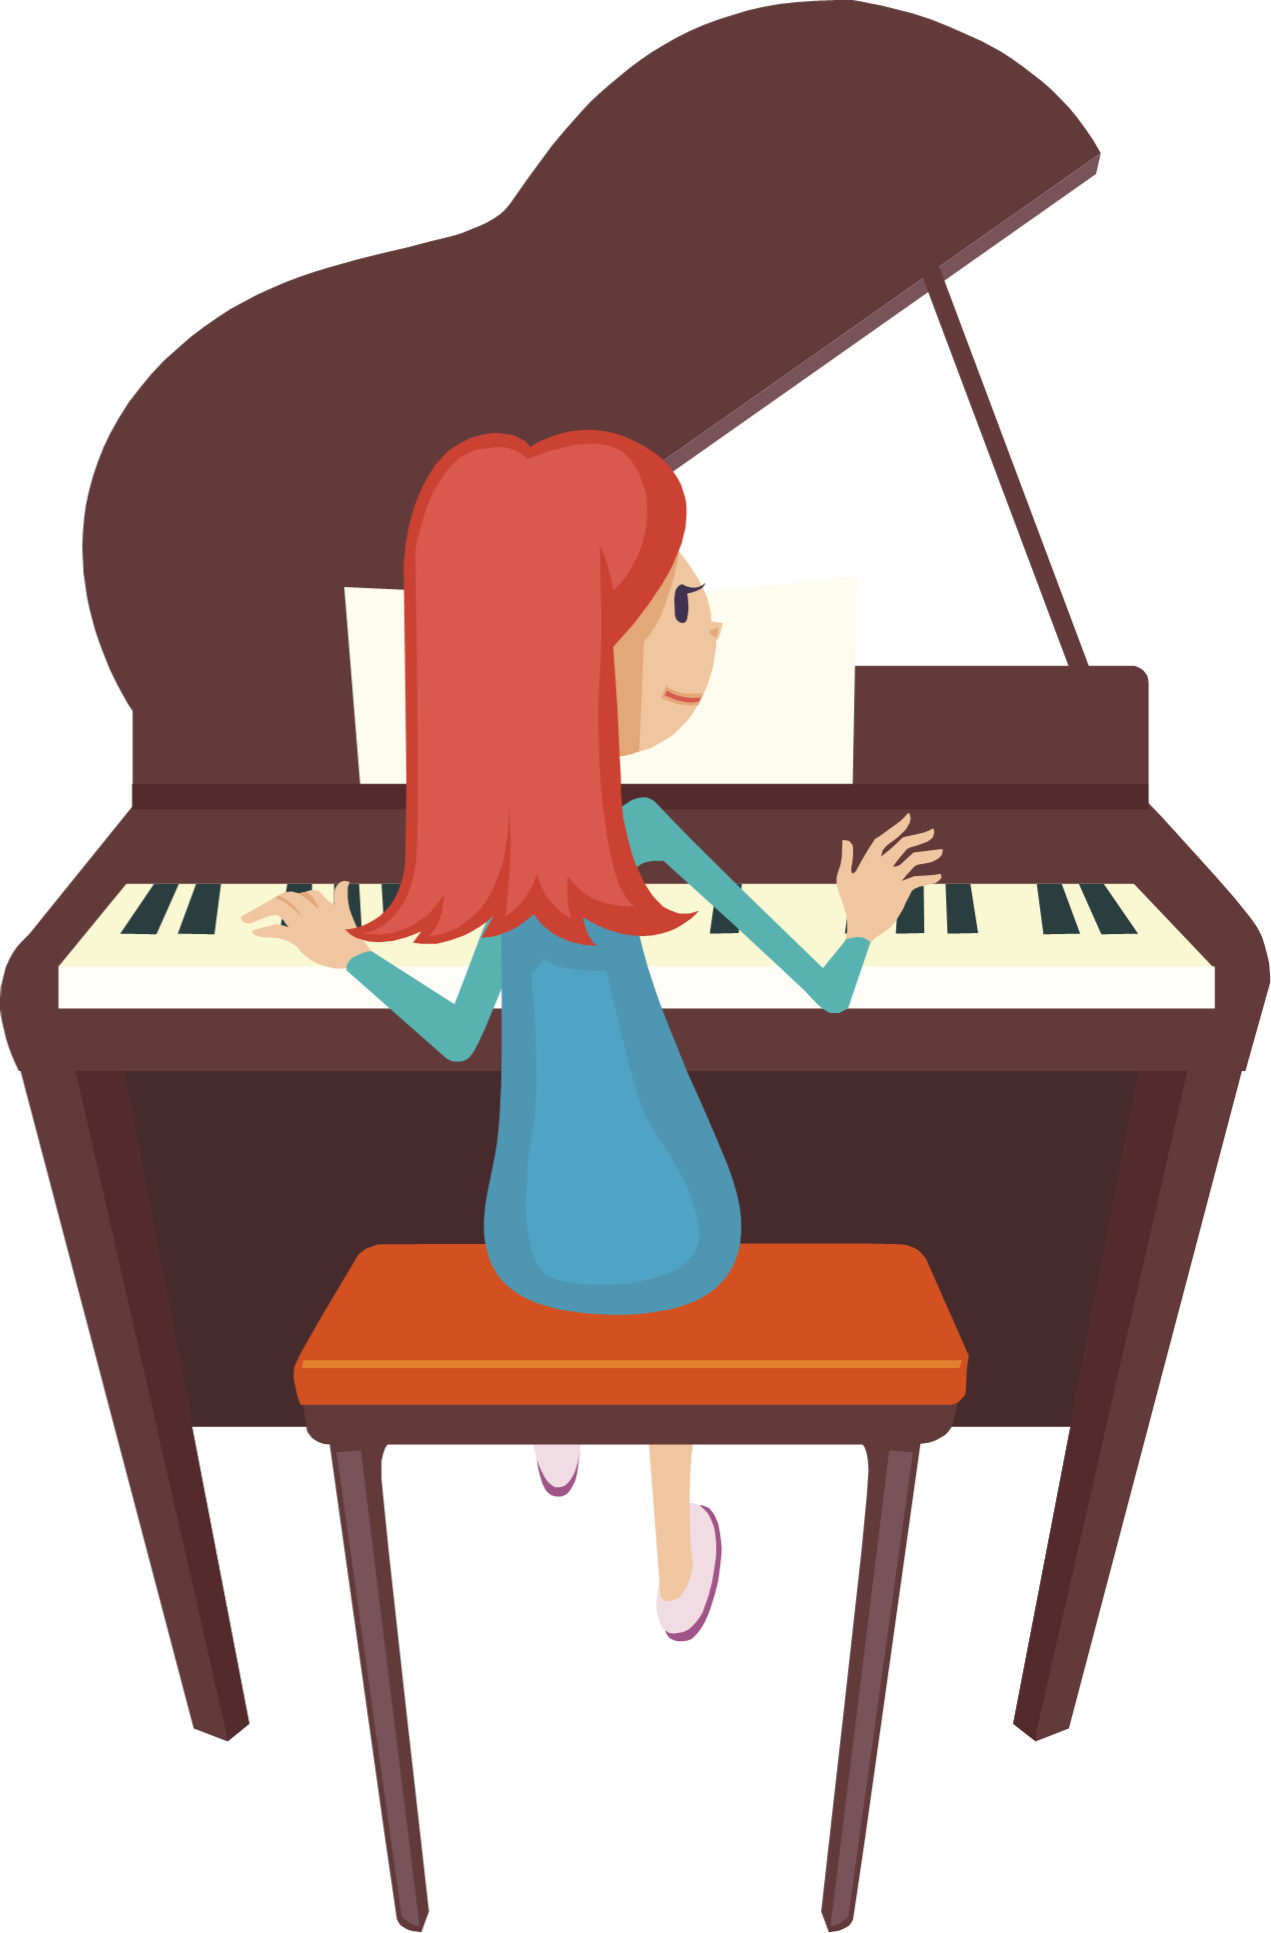 Cartoon Piano Pictures - Cliparts.co